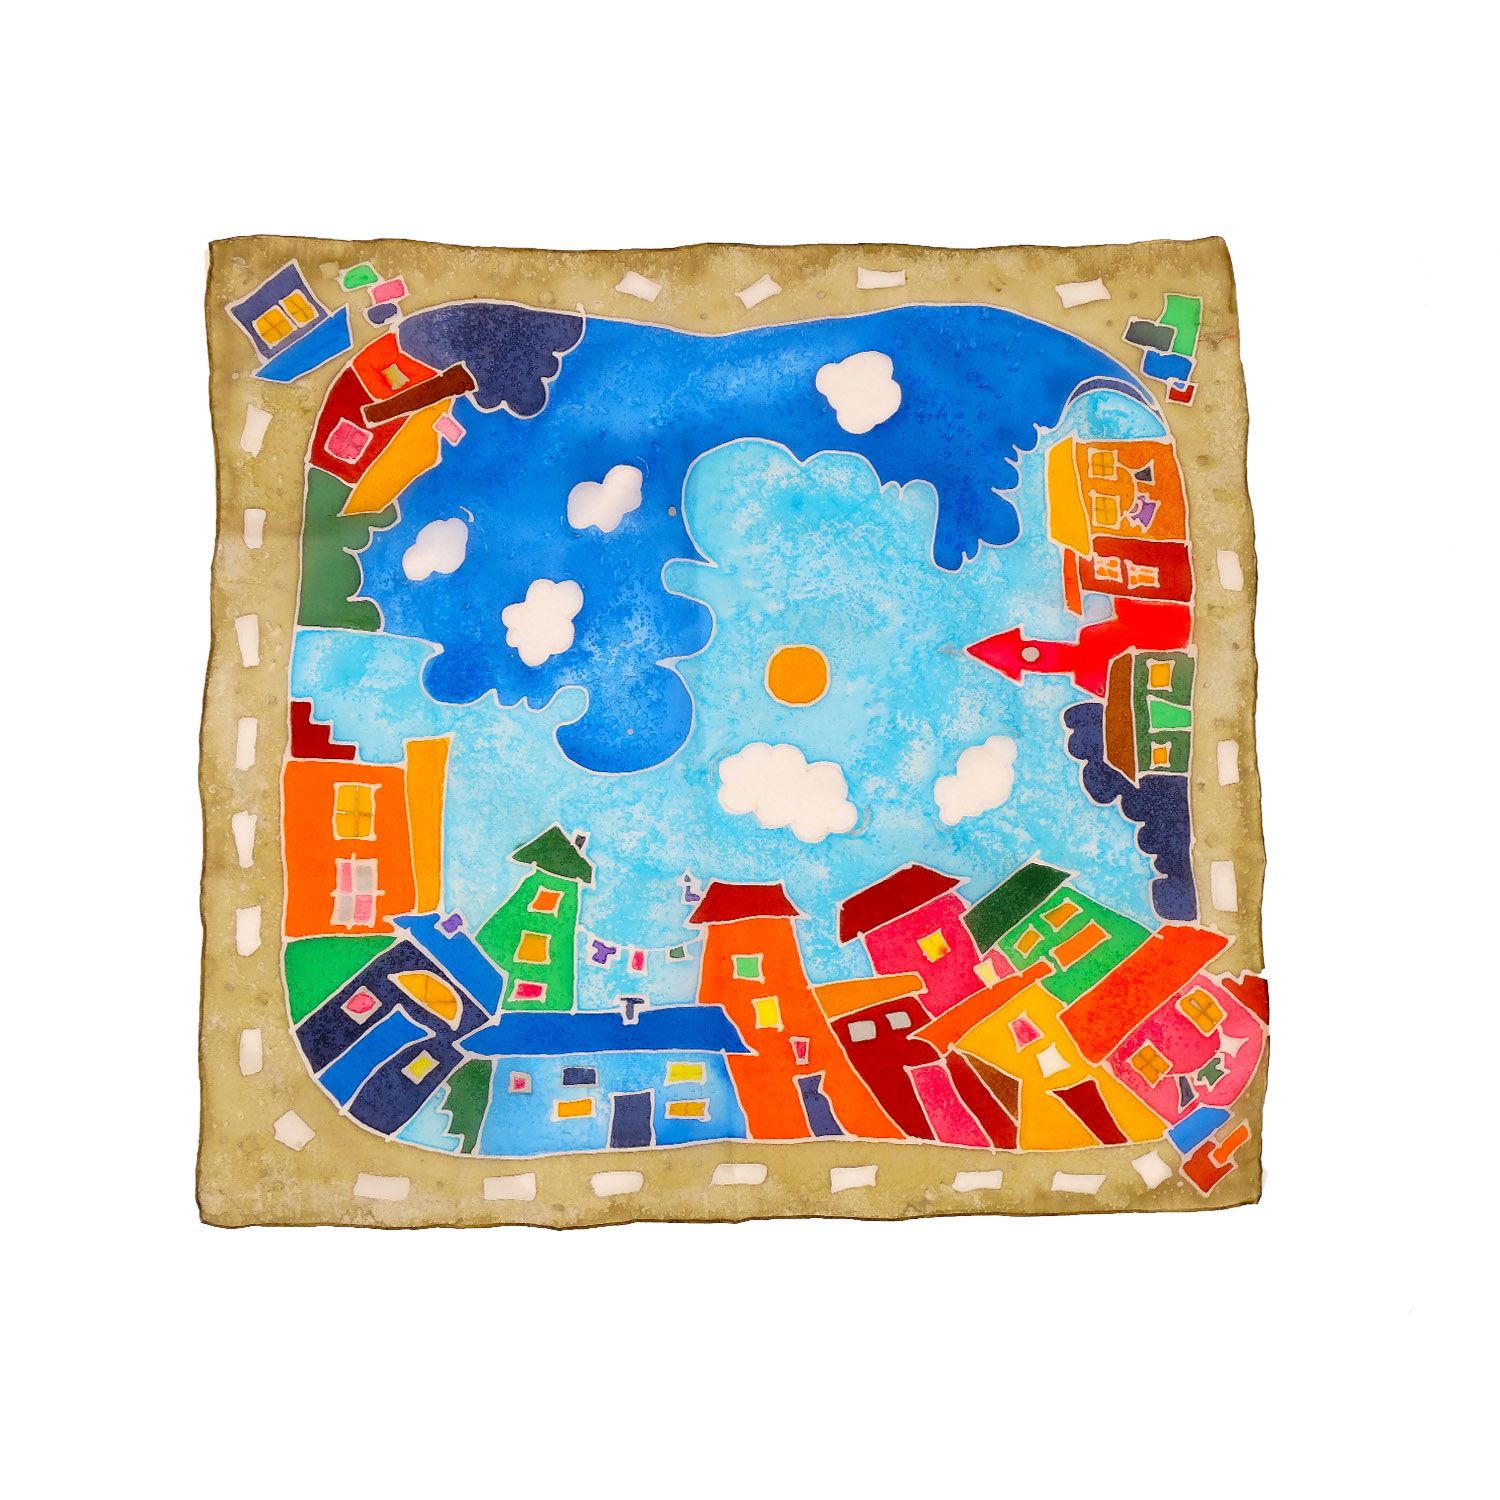 Foulard dipinto a mano – Cartoon City Night & Day